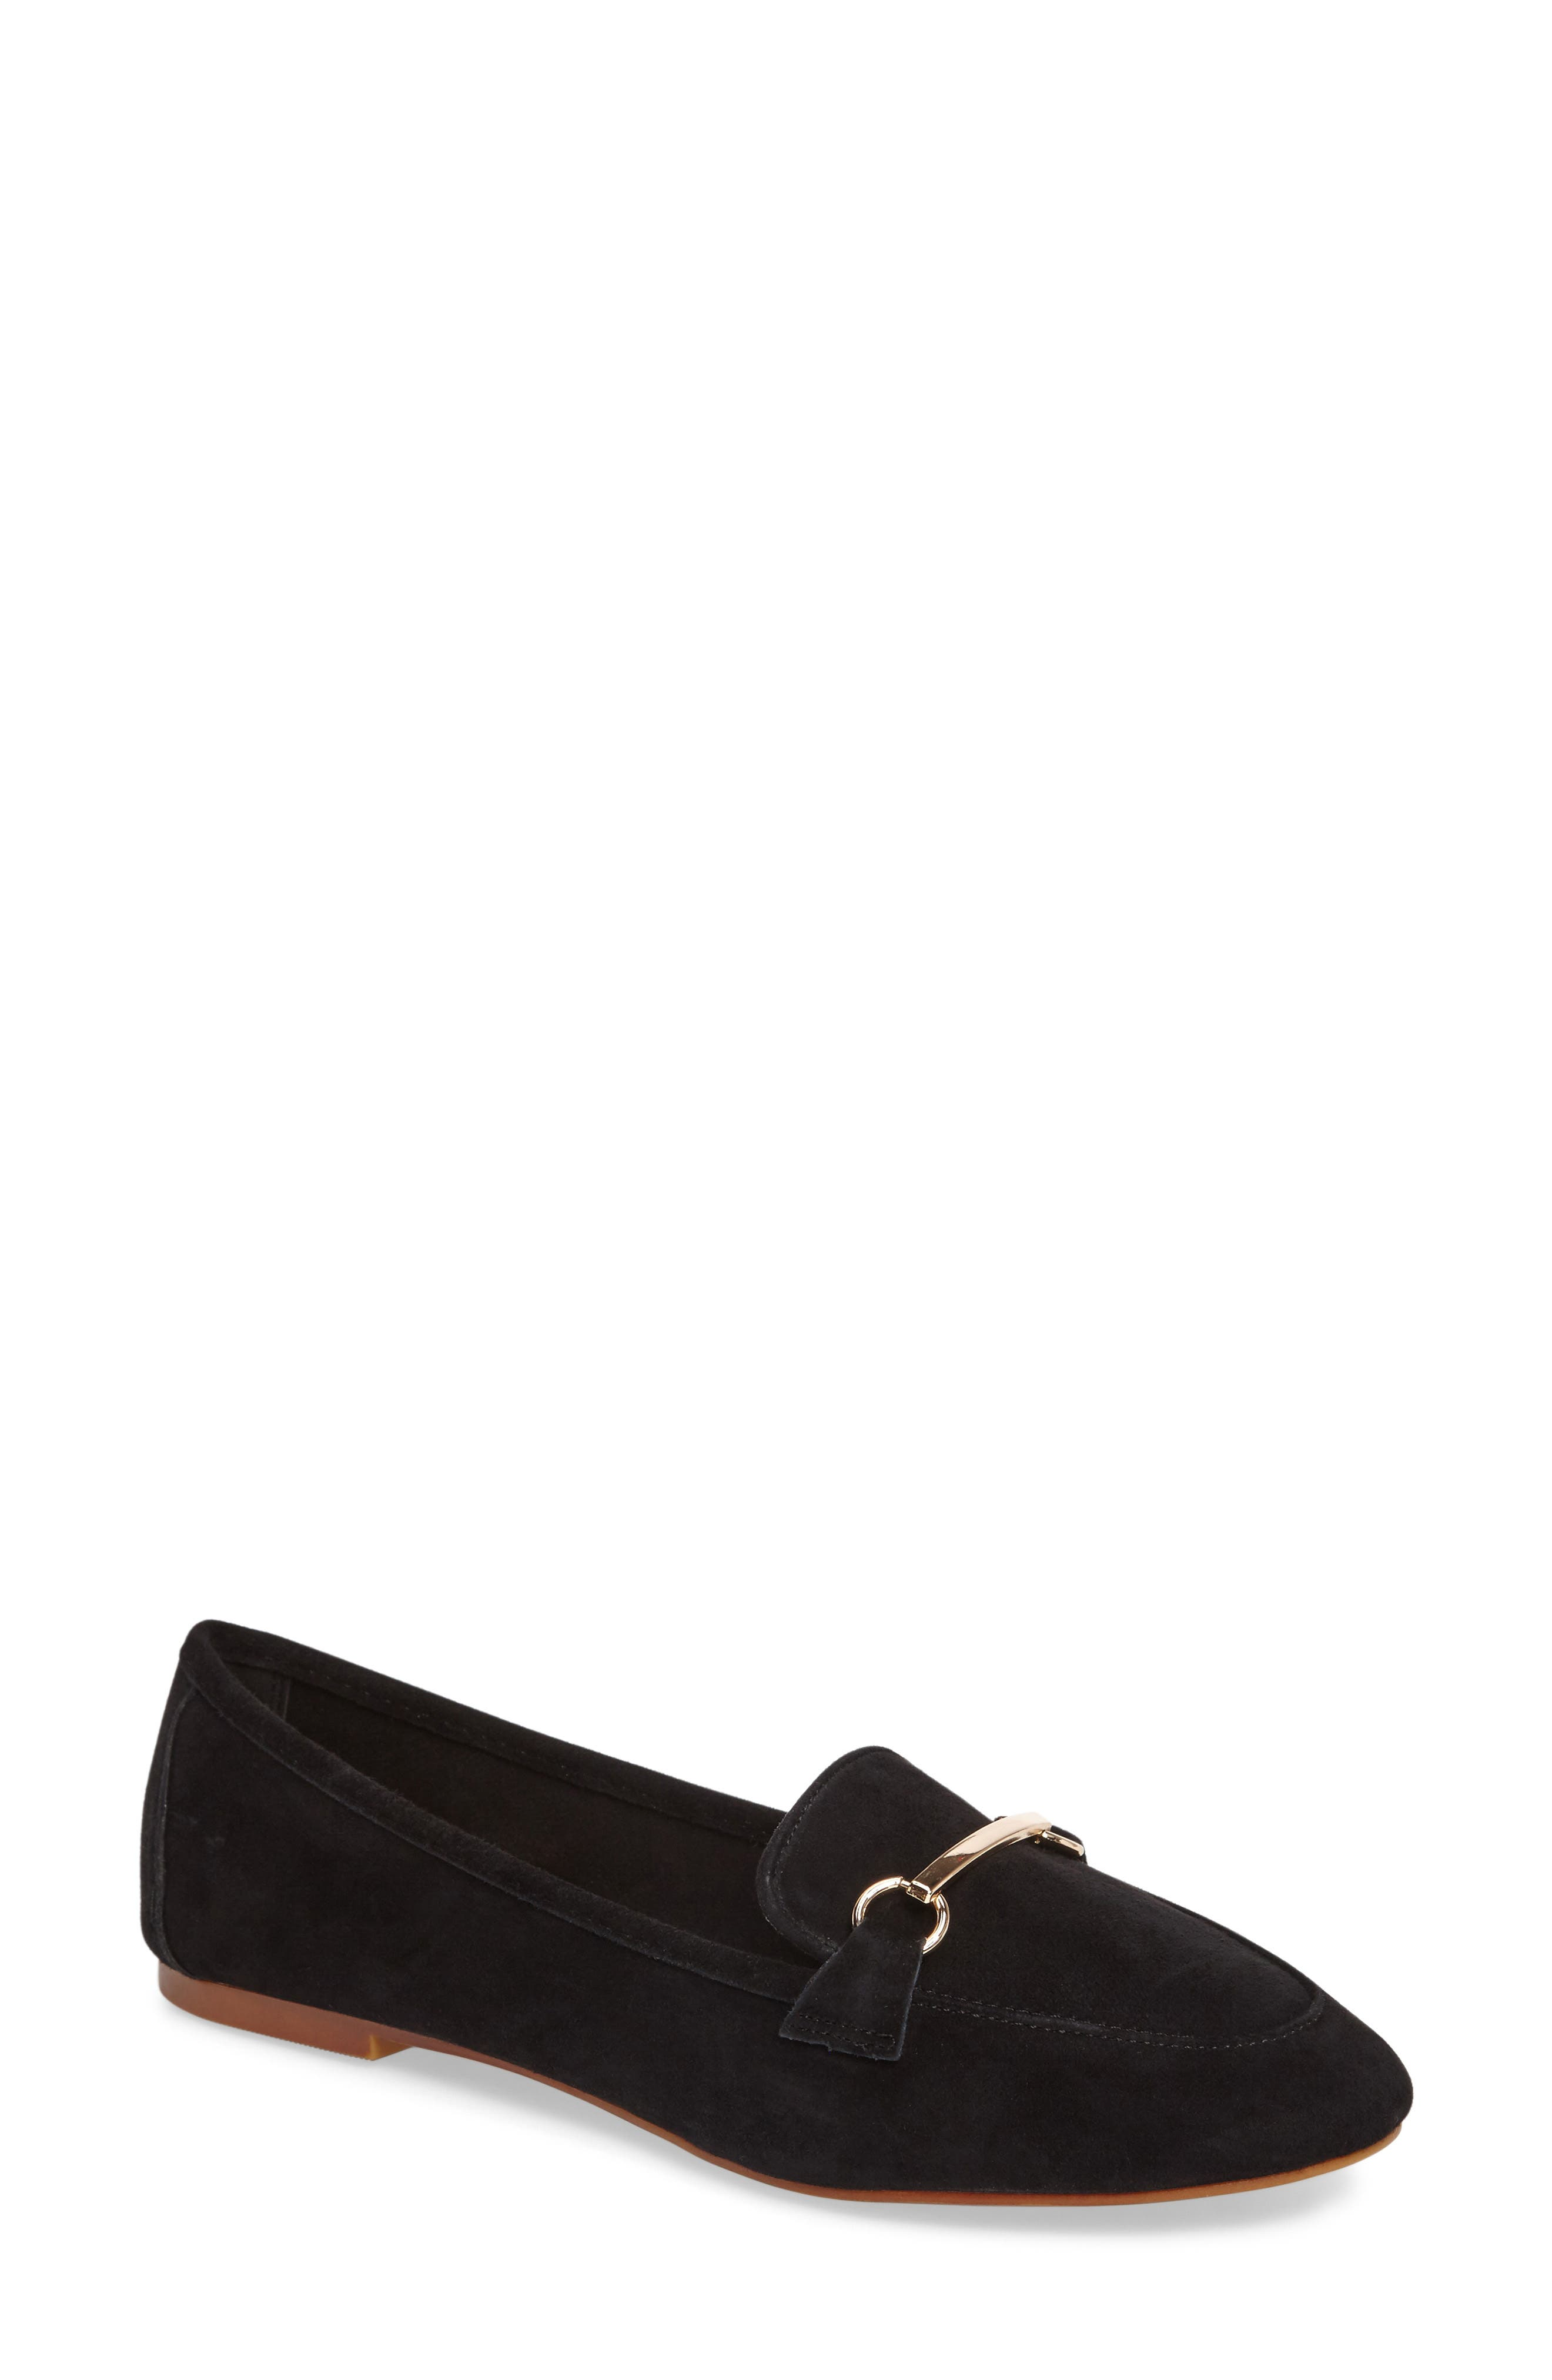 Main Image - Topshop Libby Softy Loafer (Women)